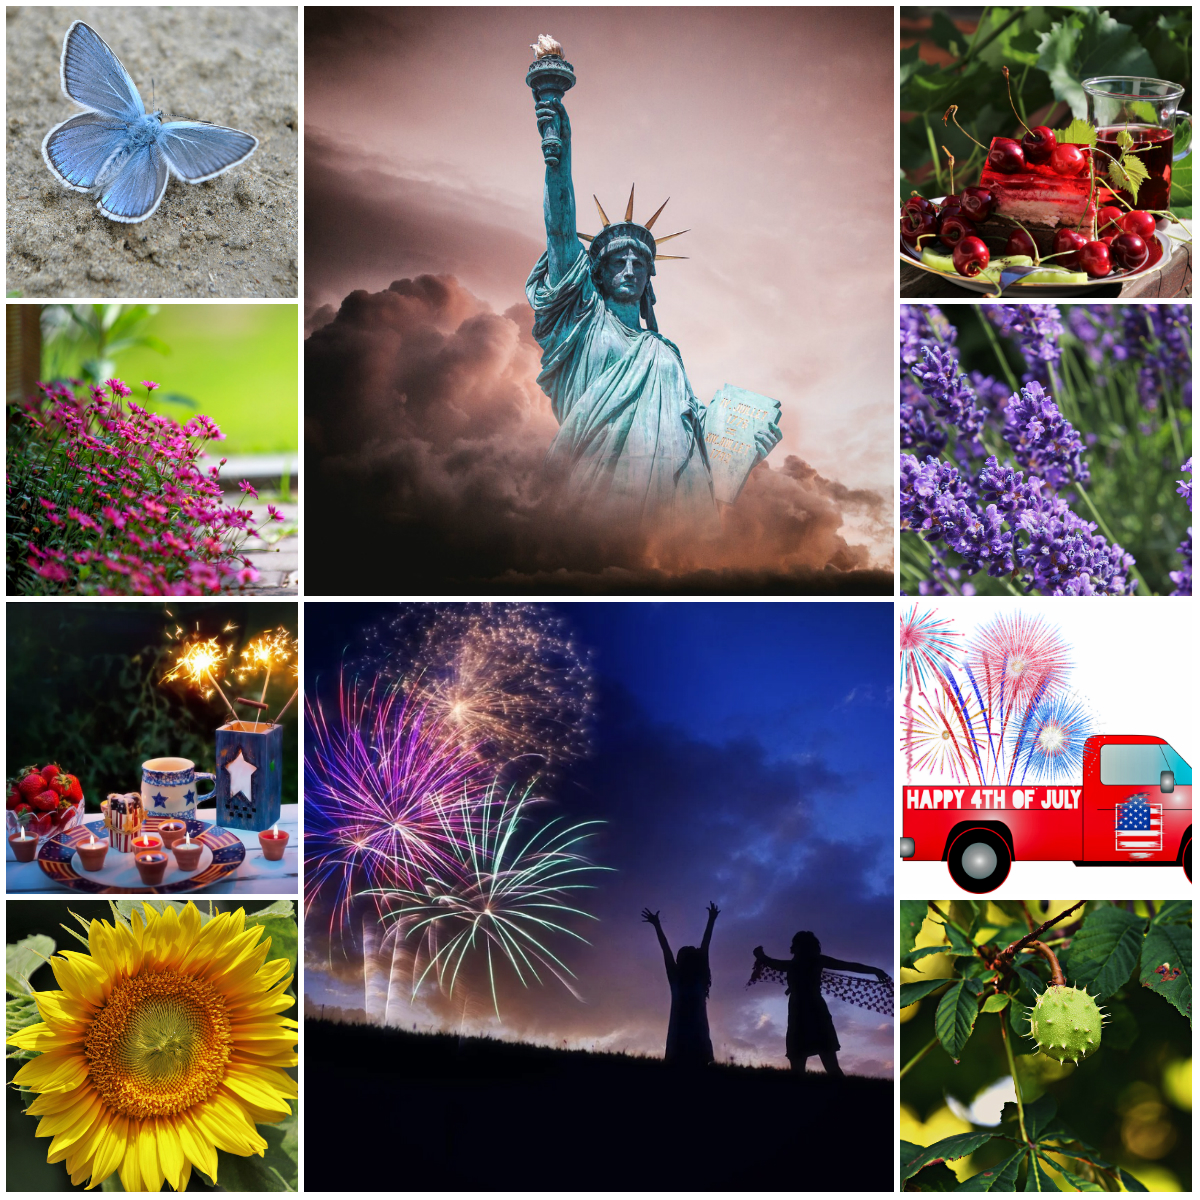 Motivation 2020: 20 Famous July 4th Poems To Remember #IndependenceDay